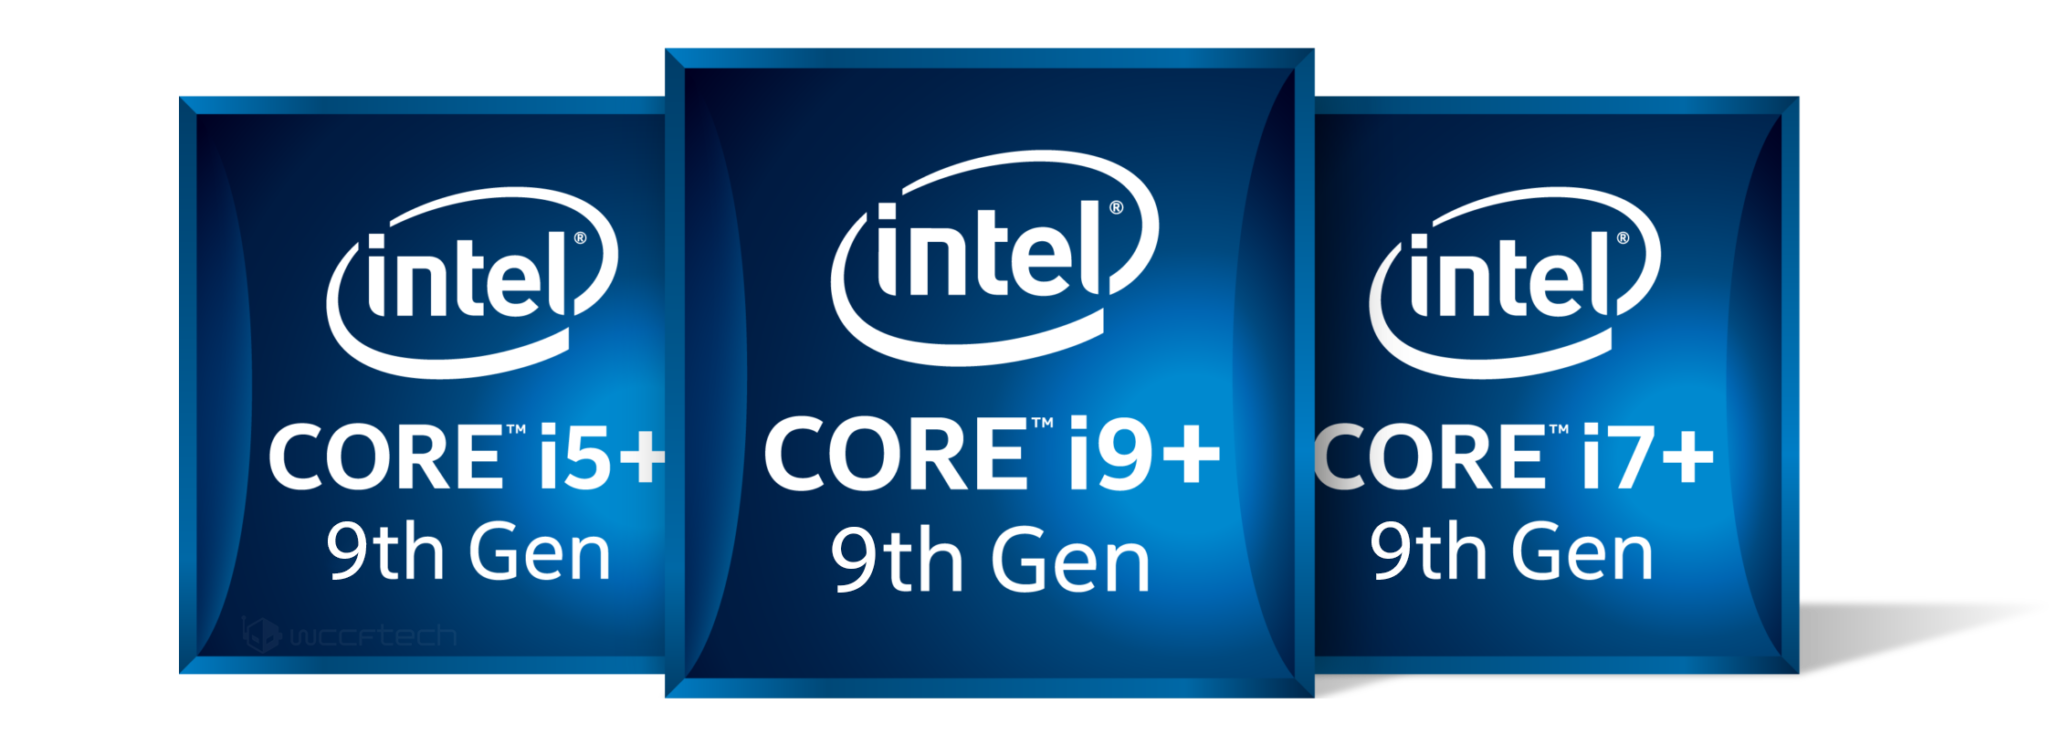 Intel 9th Generation Core i9-9900K Release Date, Specs & Features